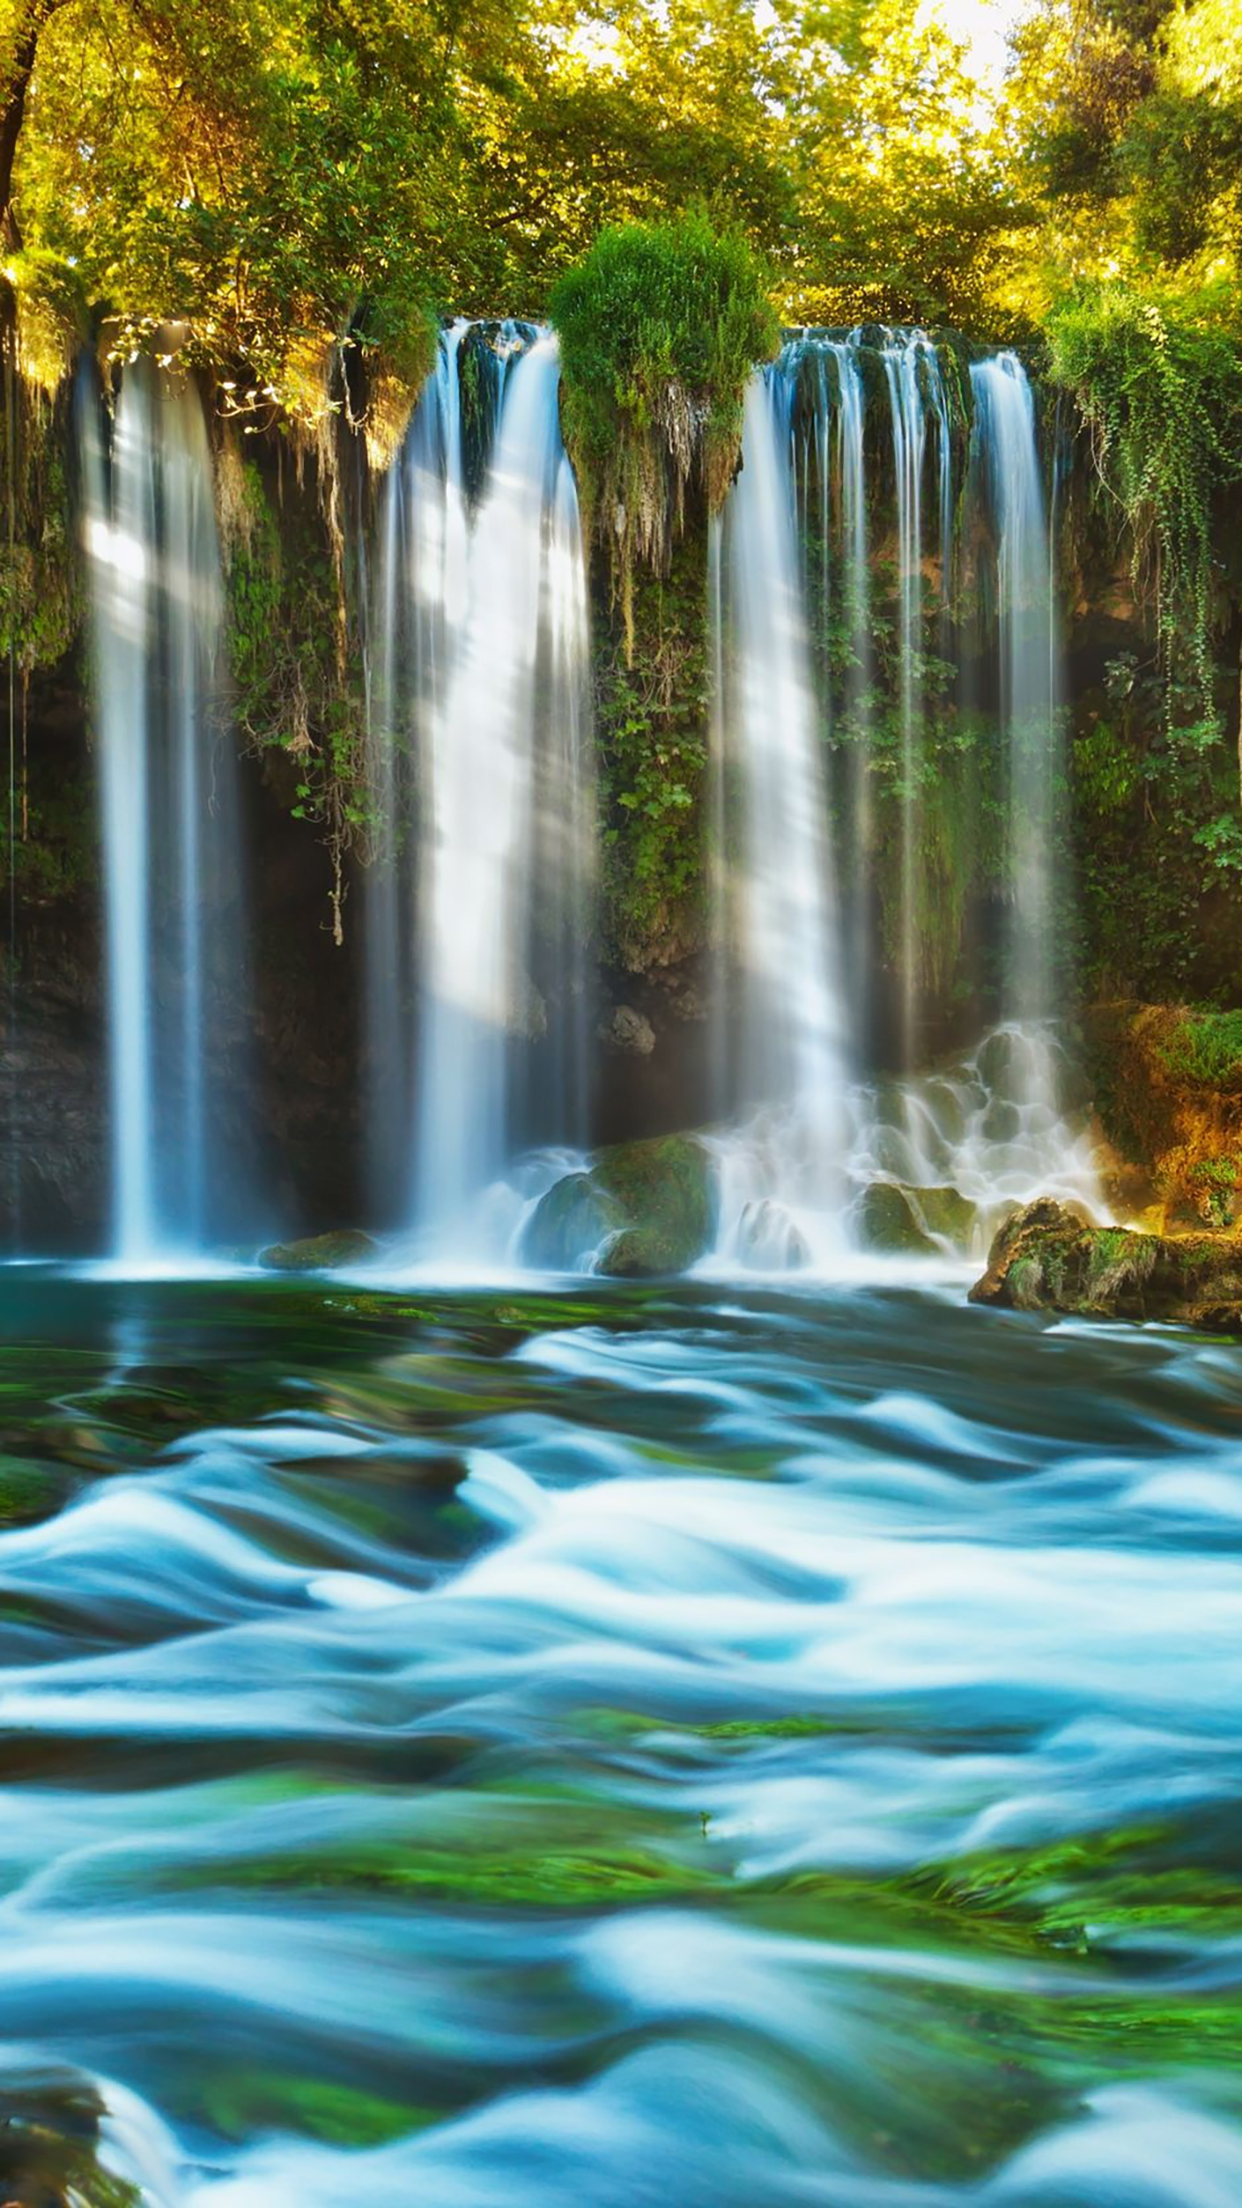 Waterfall 1 3Wallpapers iPhone Parallax Les 3Wallpapers iPhone du jour ...